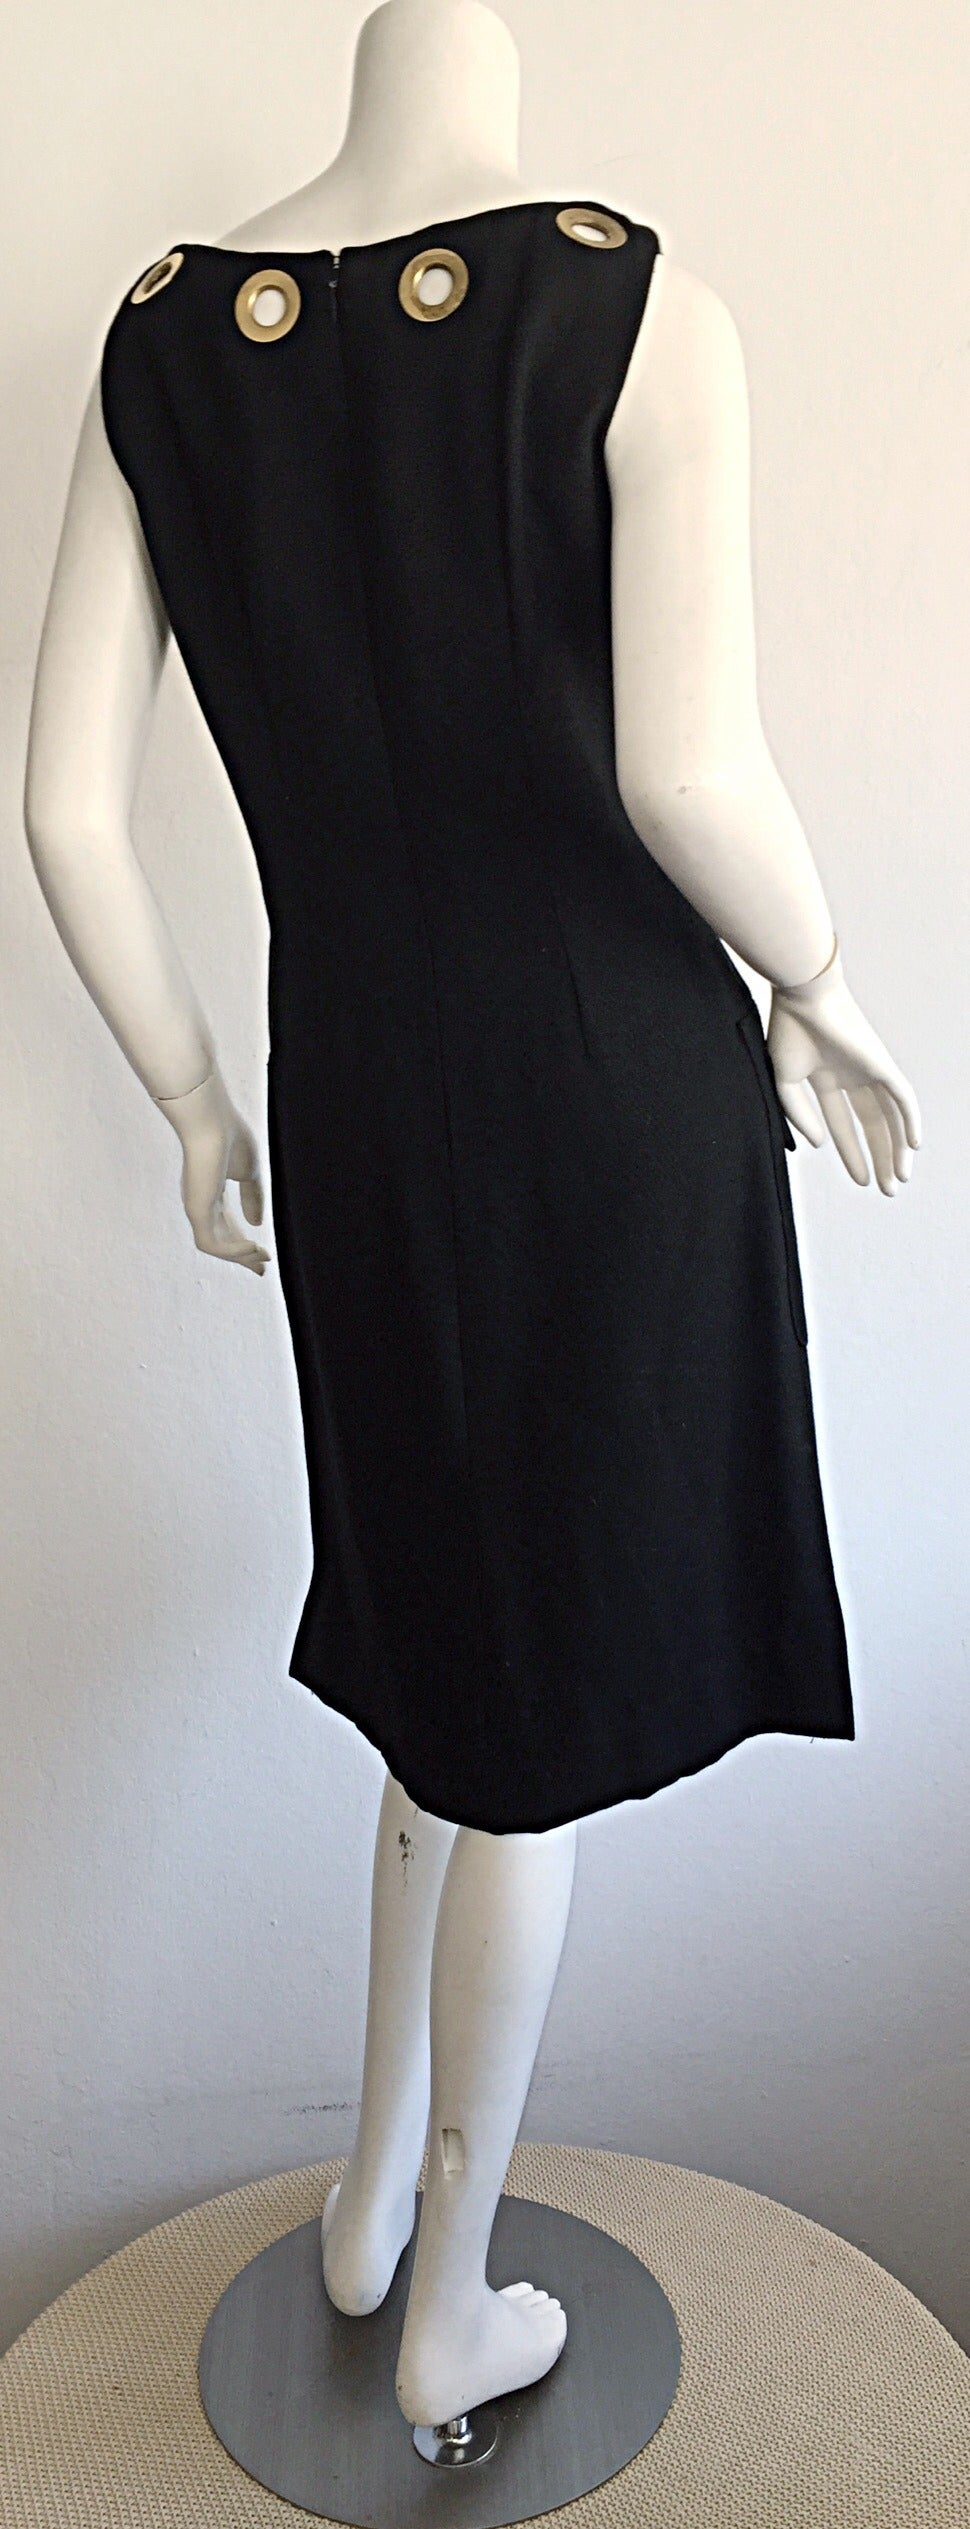 Rare 1960s Pierre Cardin Black Grommet Space Age 60s Vintage Linen Shift Dress 5